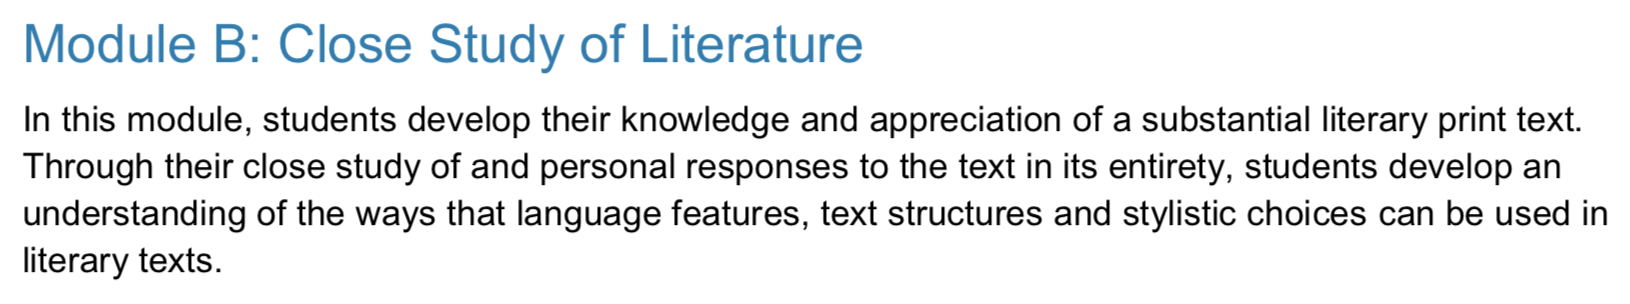 hsc year 11 standard english module b close study of literature